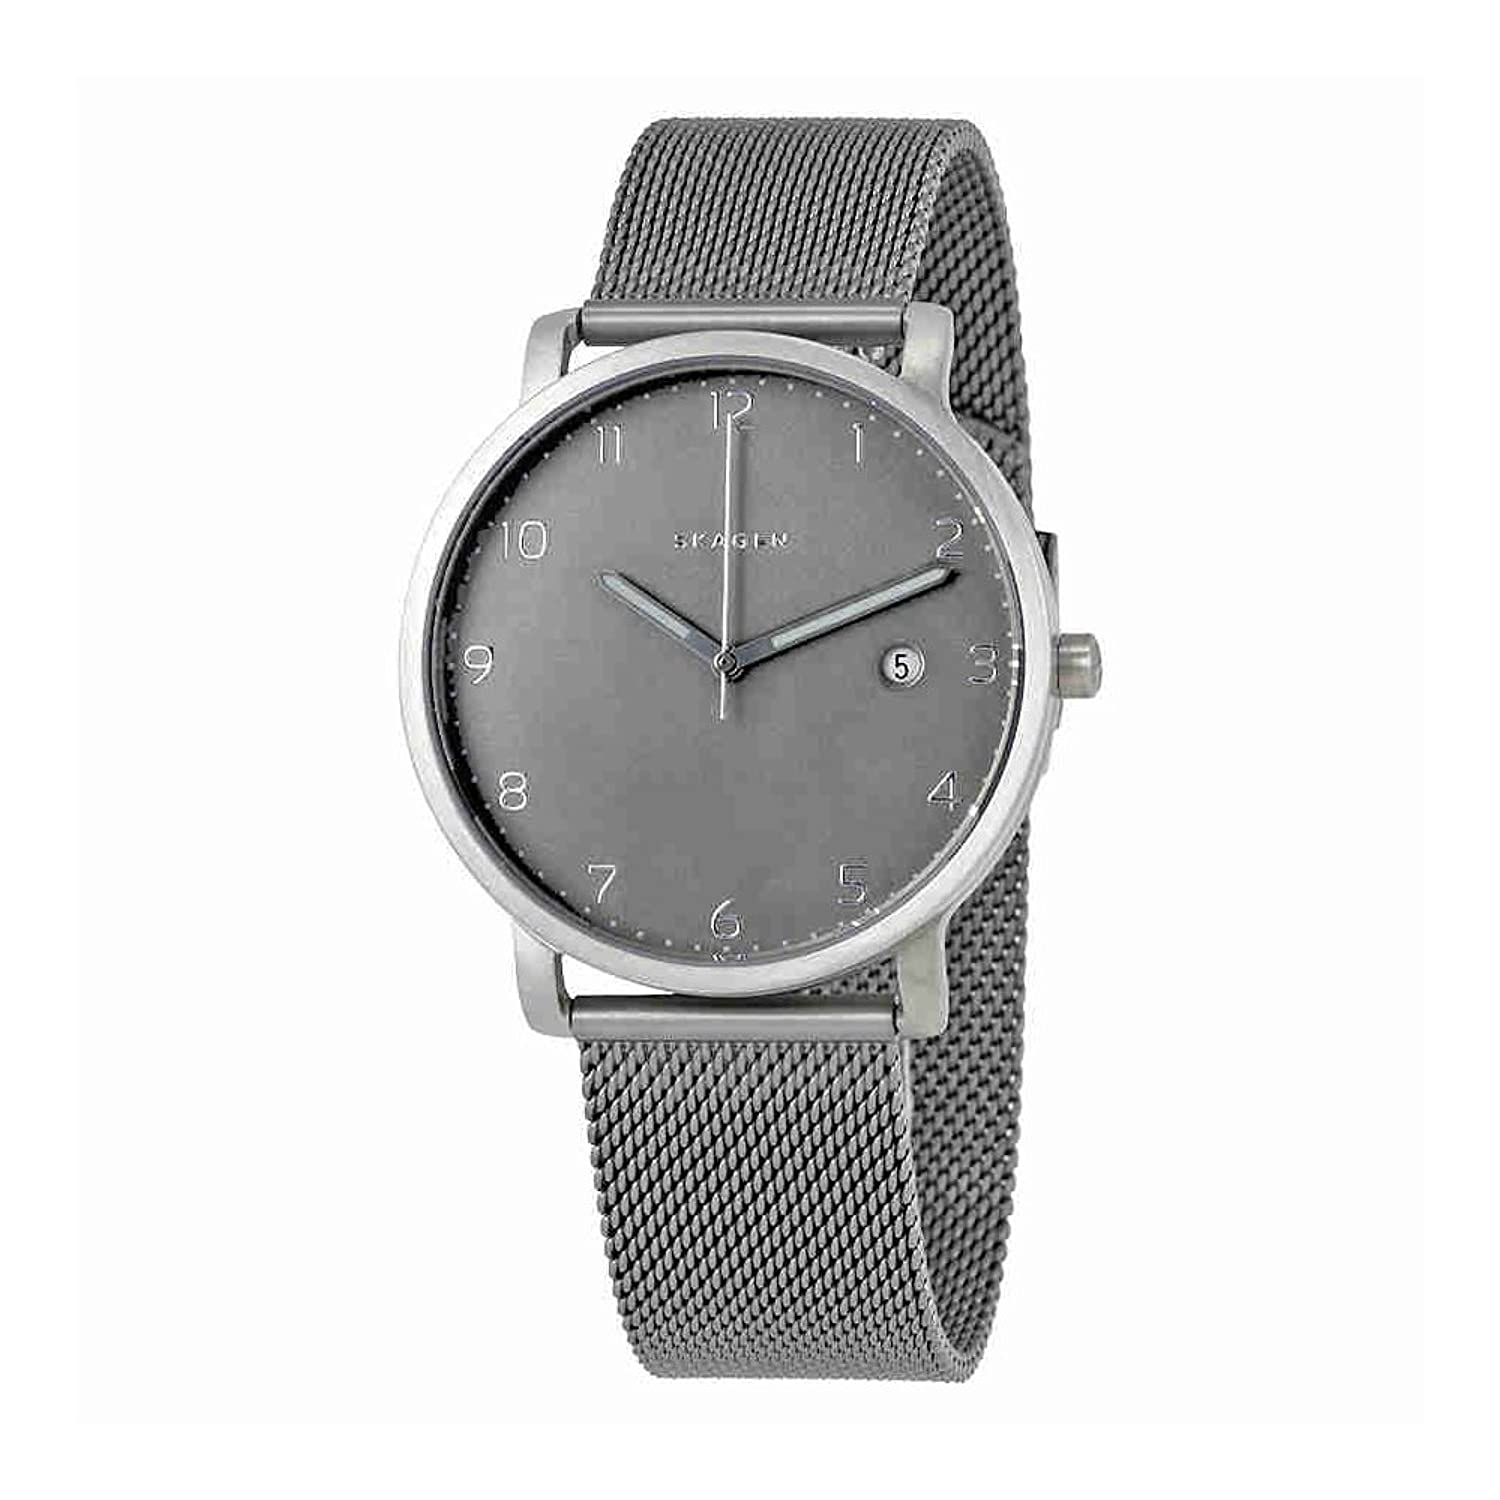 the skagen with watch s hands hagen women on watches youtube